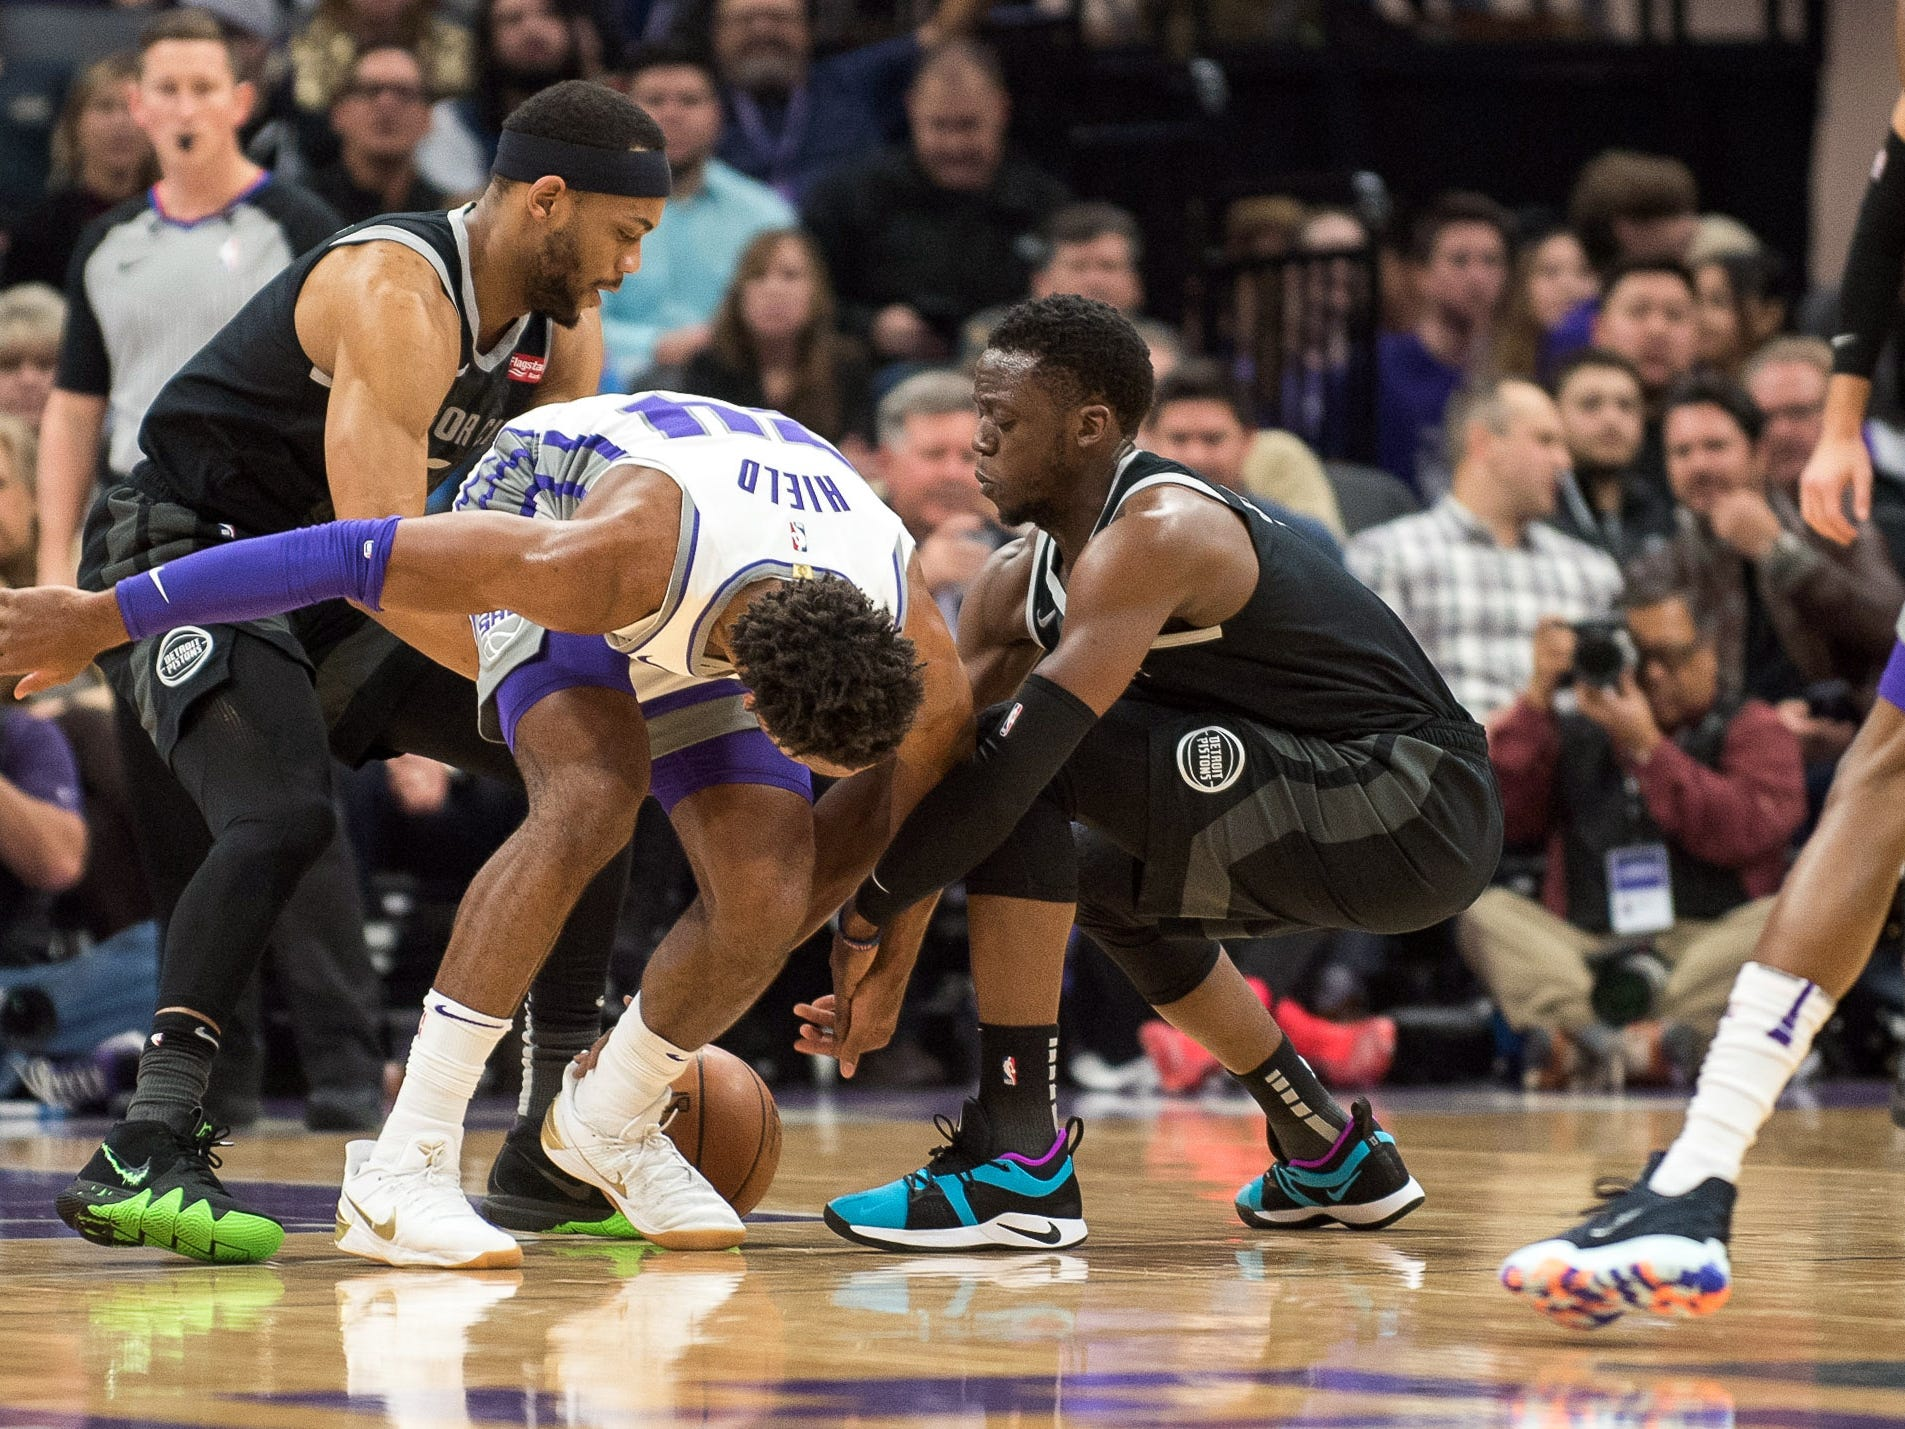 Detroit Pistons guard Bruce Brown (6) and guard Reggie Jackson (1) fight for possession of the ball with Sacramento Kings guard Buddy Hield (24) during the first quarter at Golden 1 Center on Thursday, Jan. 10, 2019, in Sacramento, Calif.